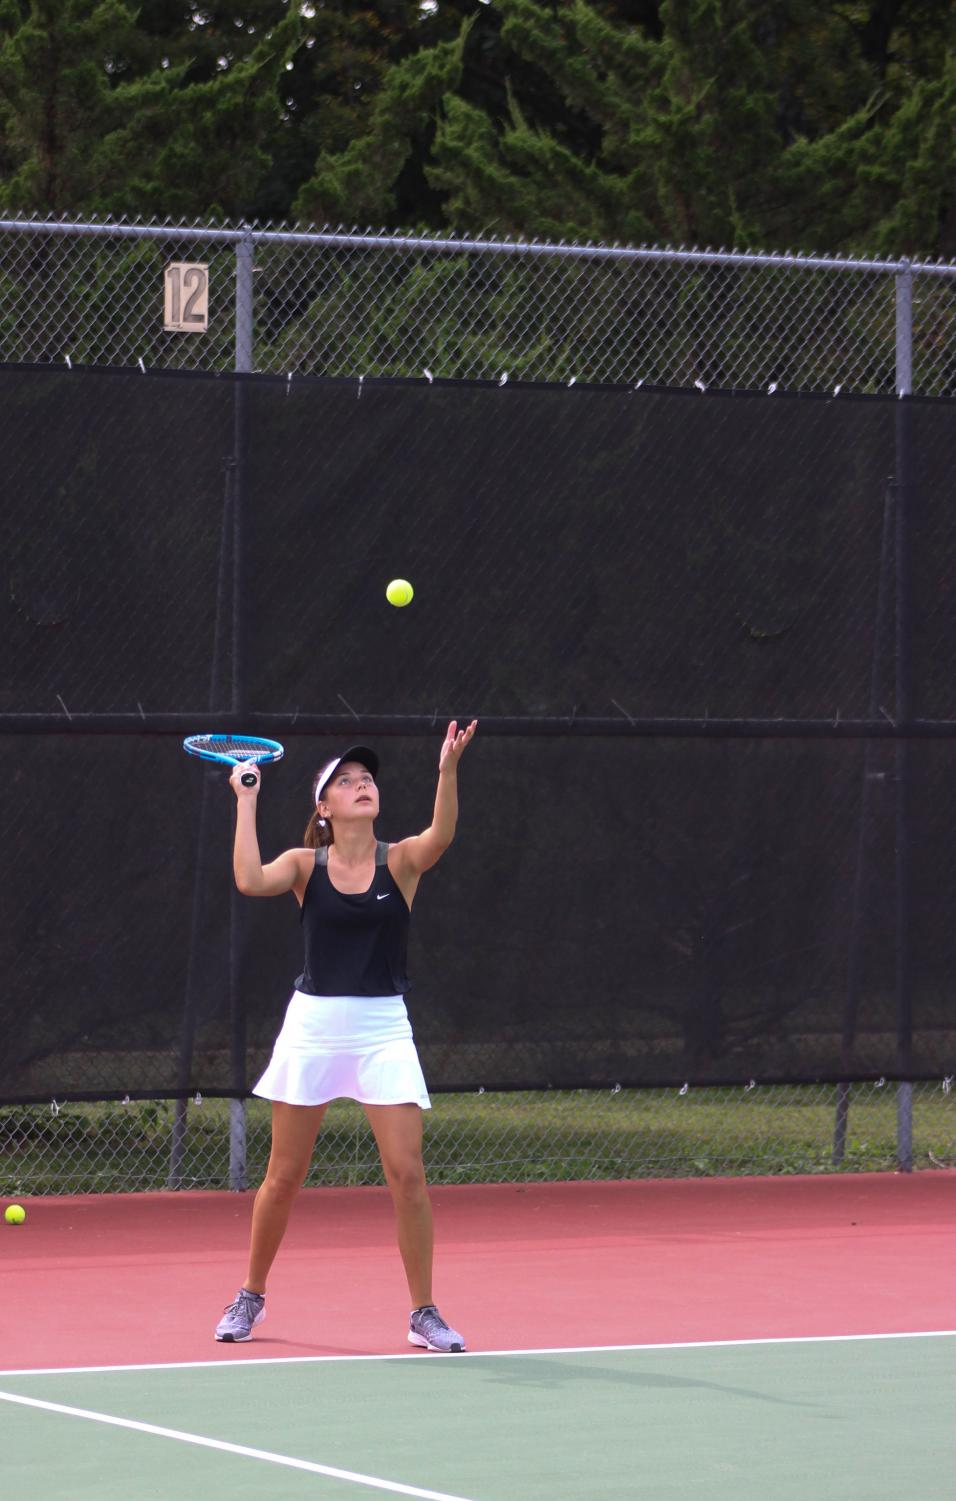 Girls+Varsity+Tennis+at+Kossover+Tennis+Center+9%2F22+%28Photos+by+Kiley+Hale%29